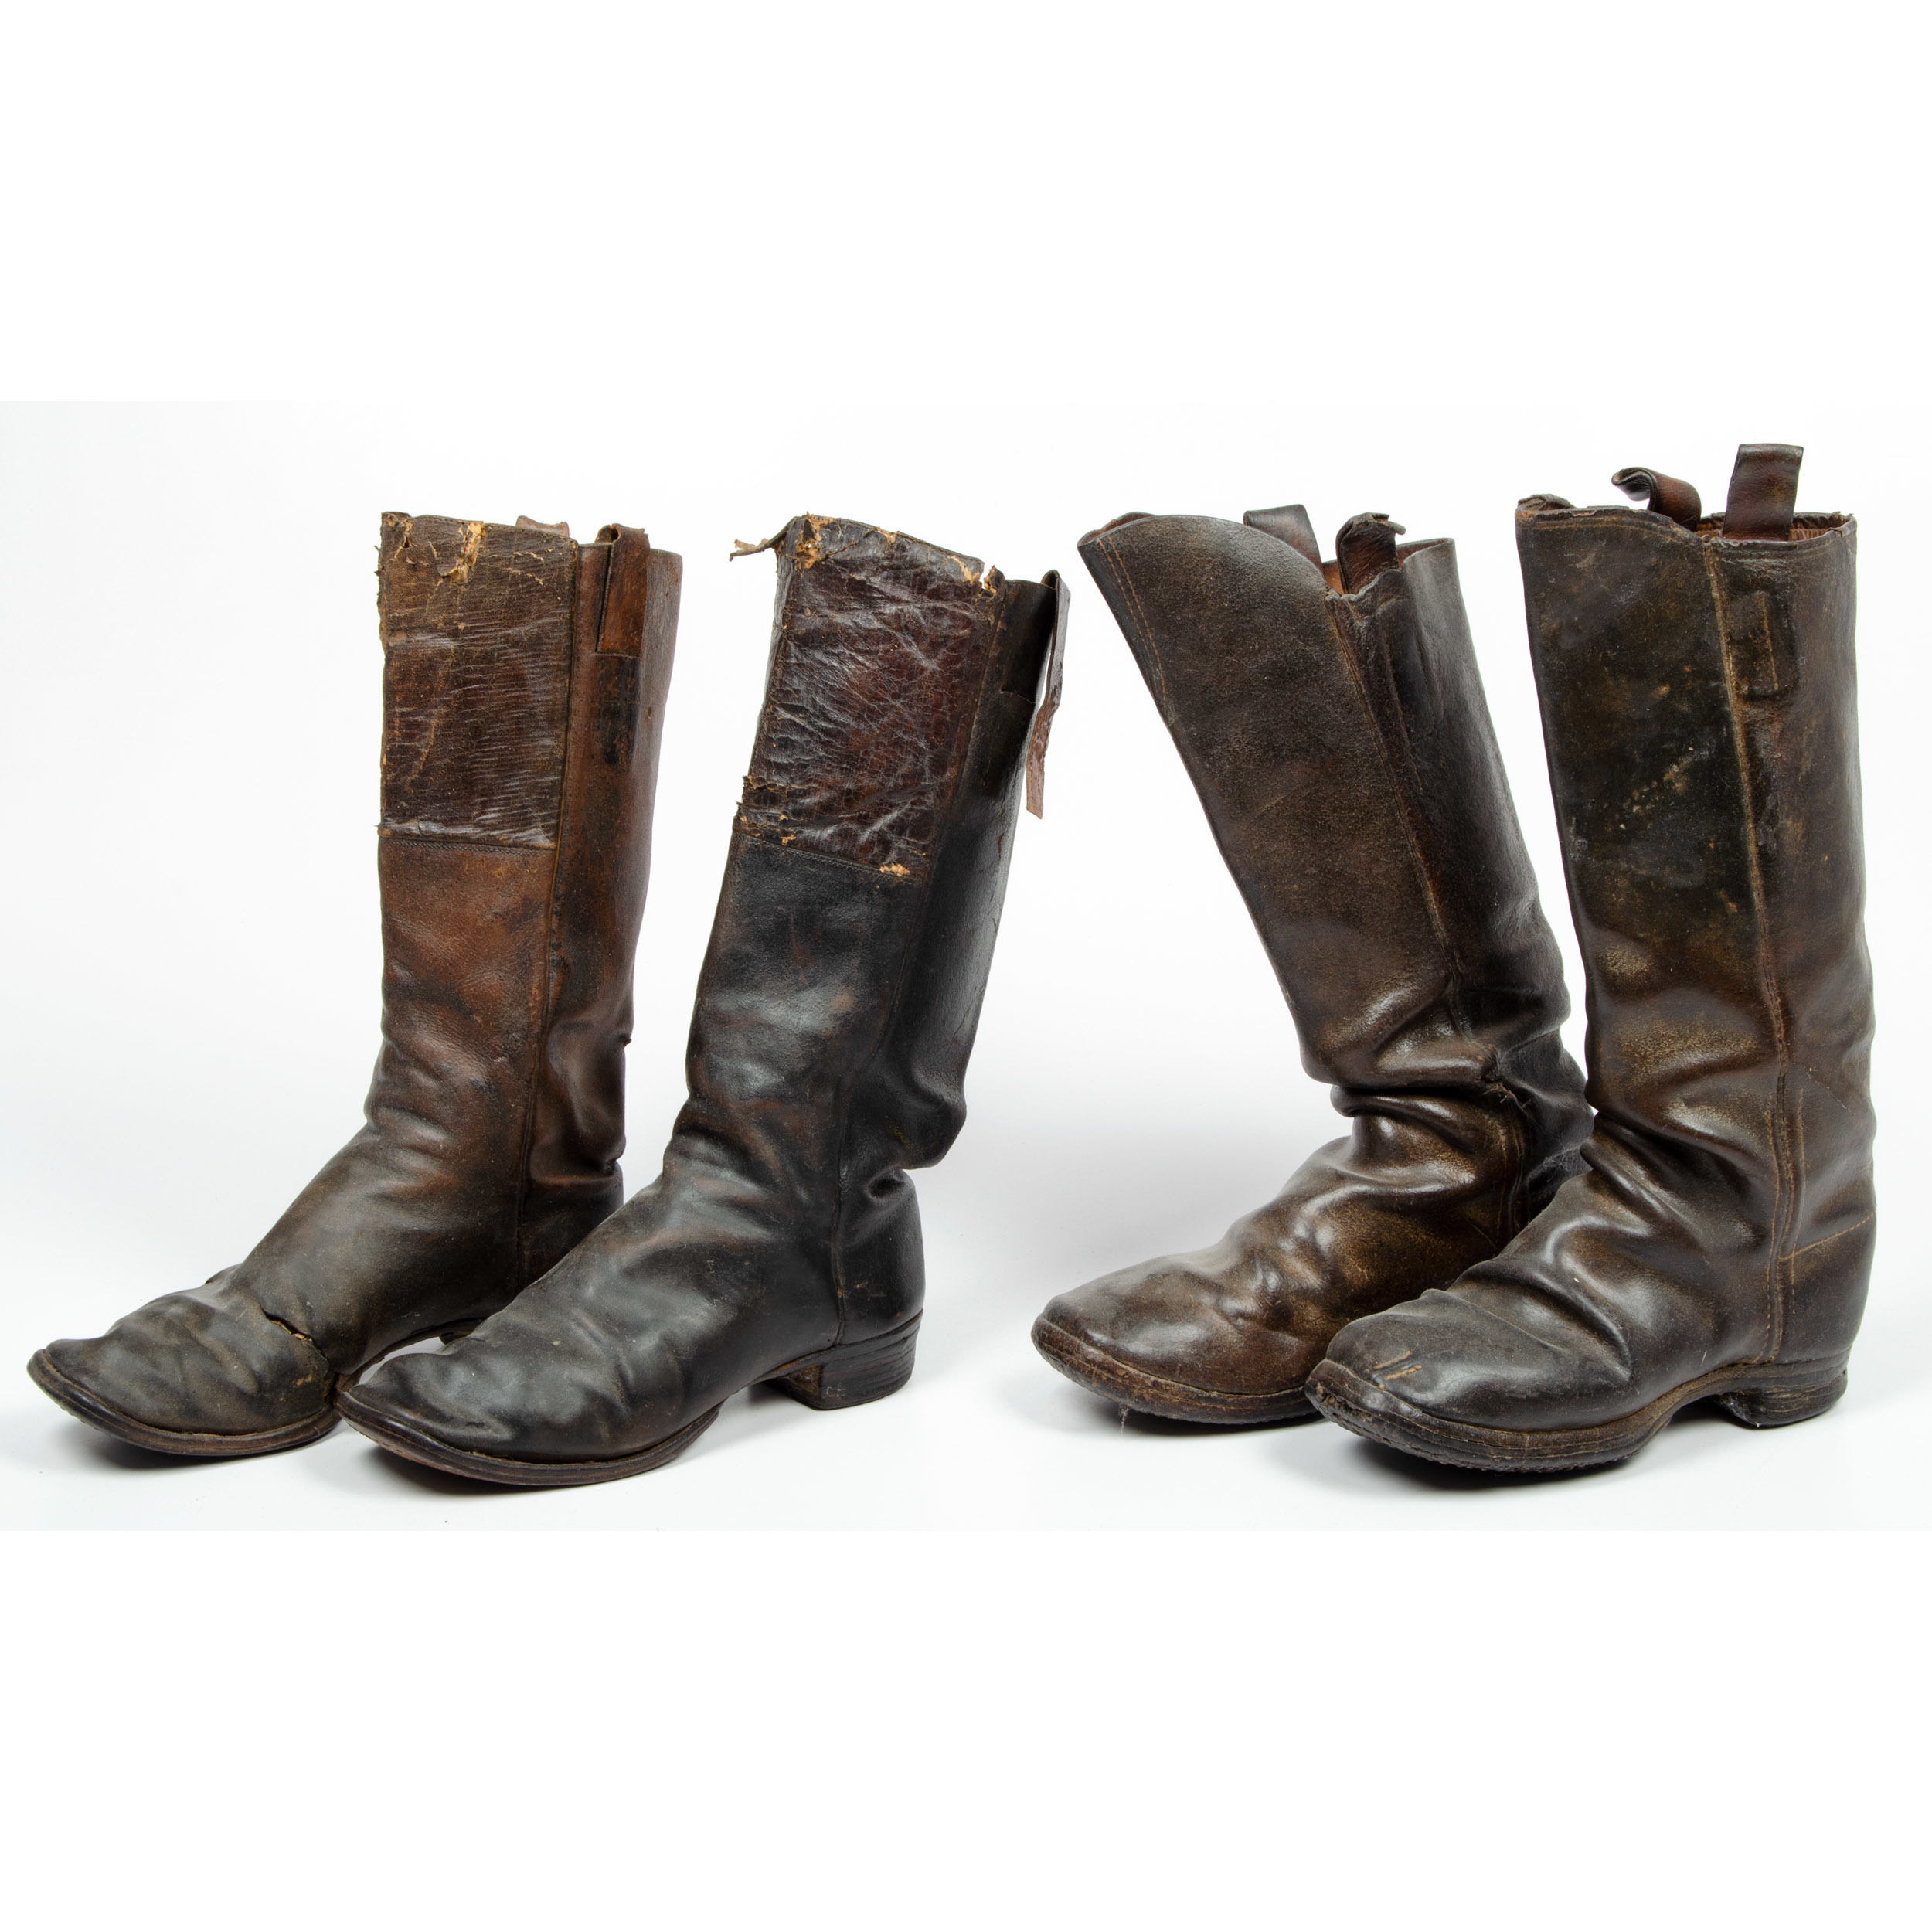 Two Pairs of Civil War Era Boots | Cowan's Auction House